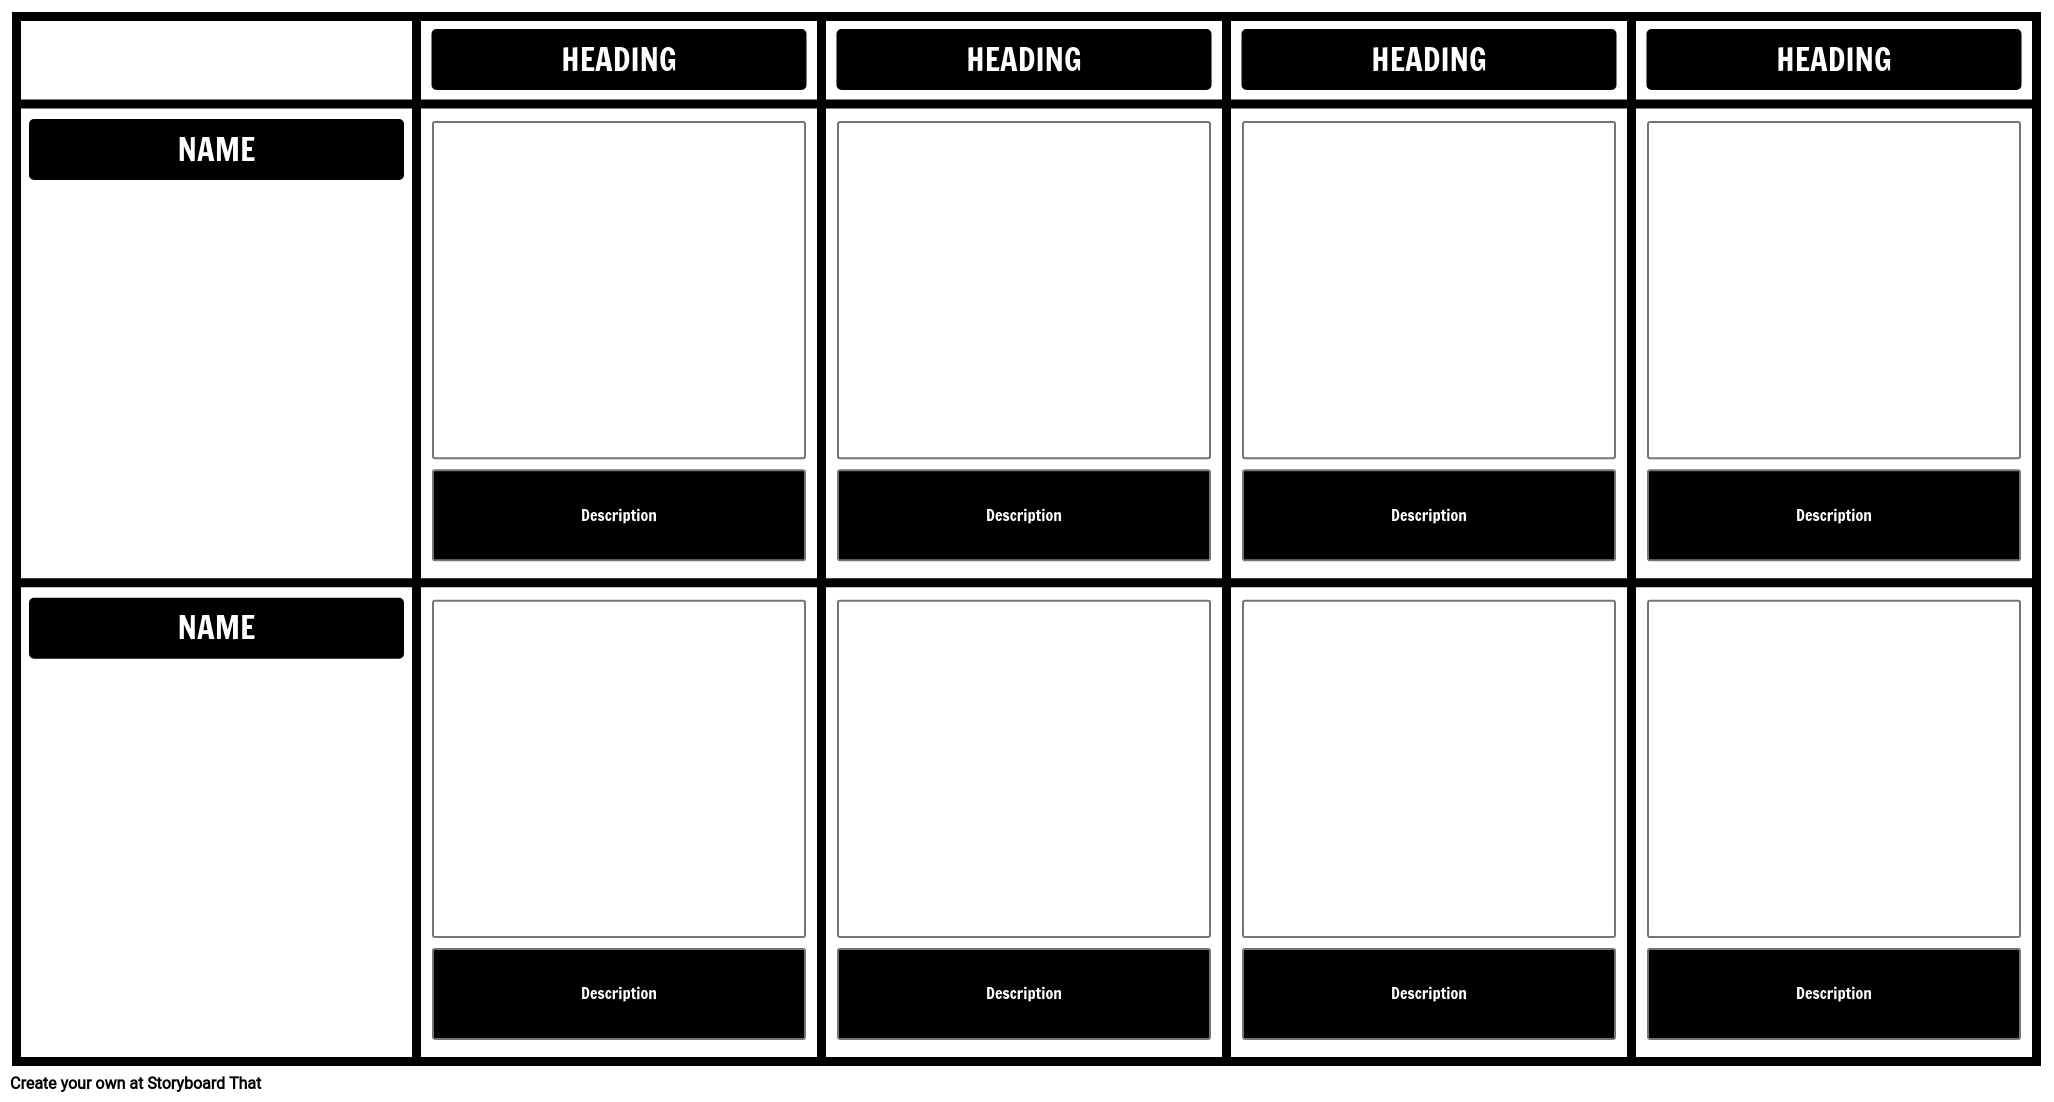 Grid Comparison with 4 Headings